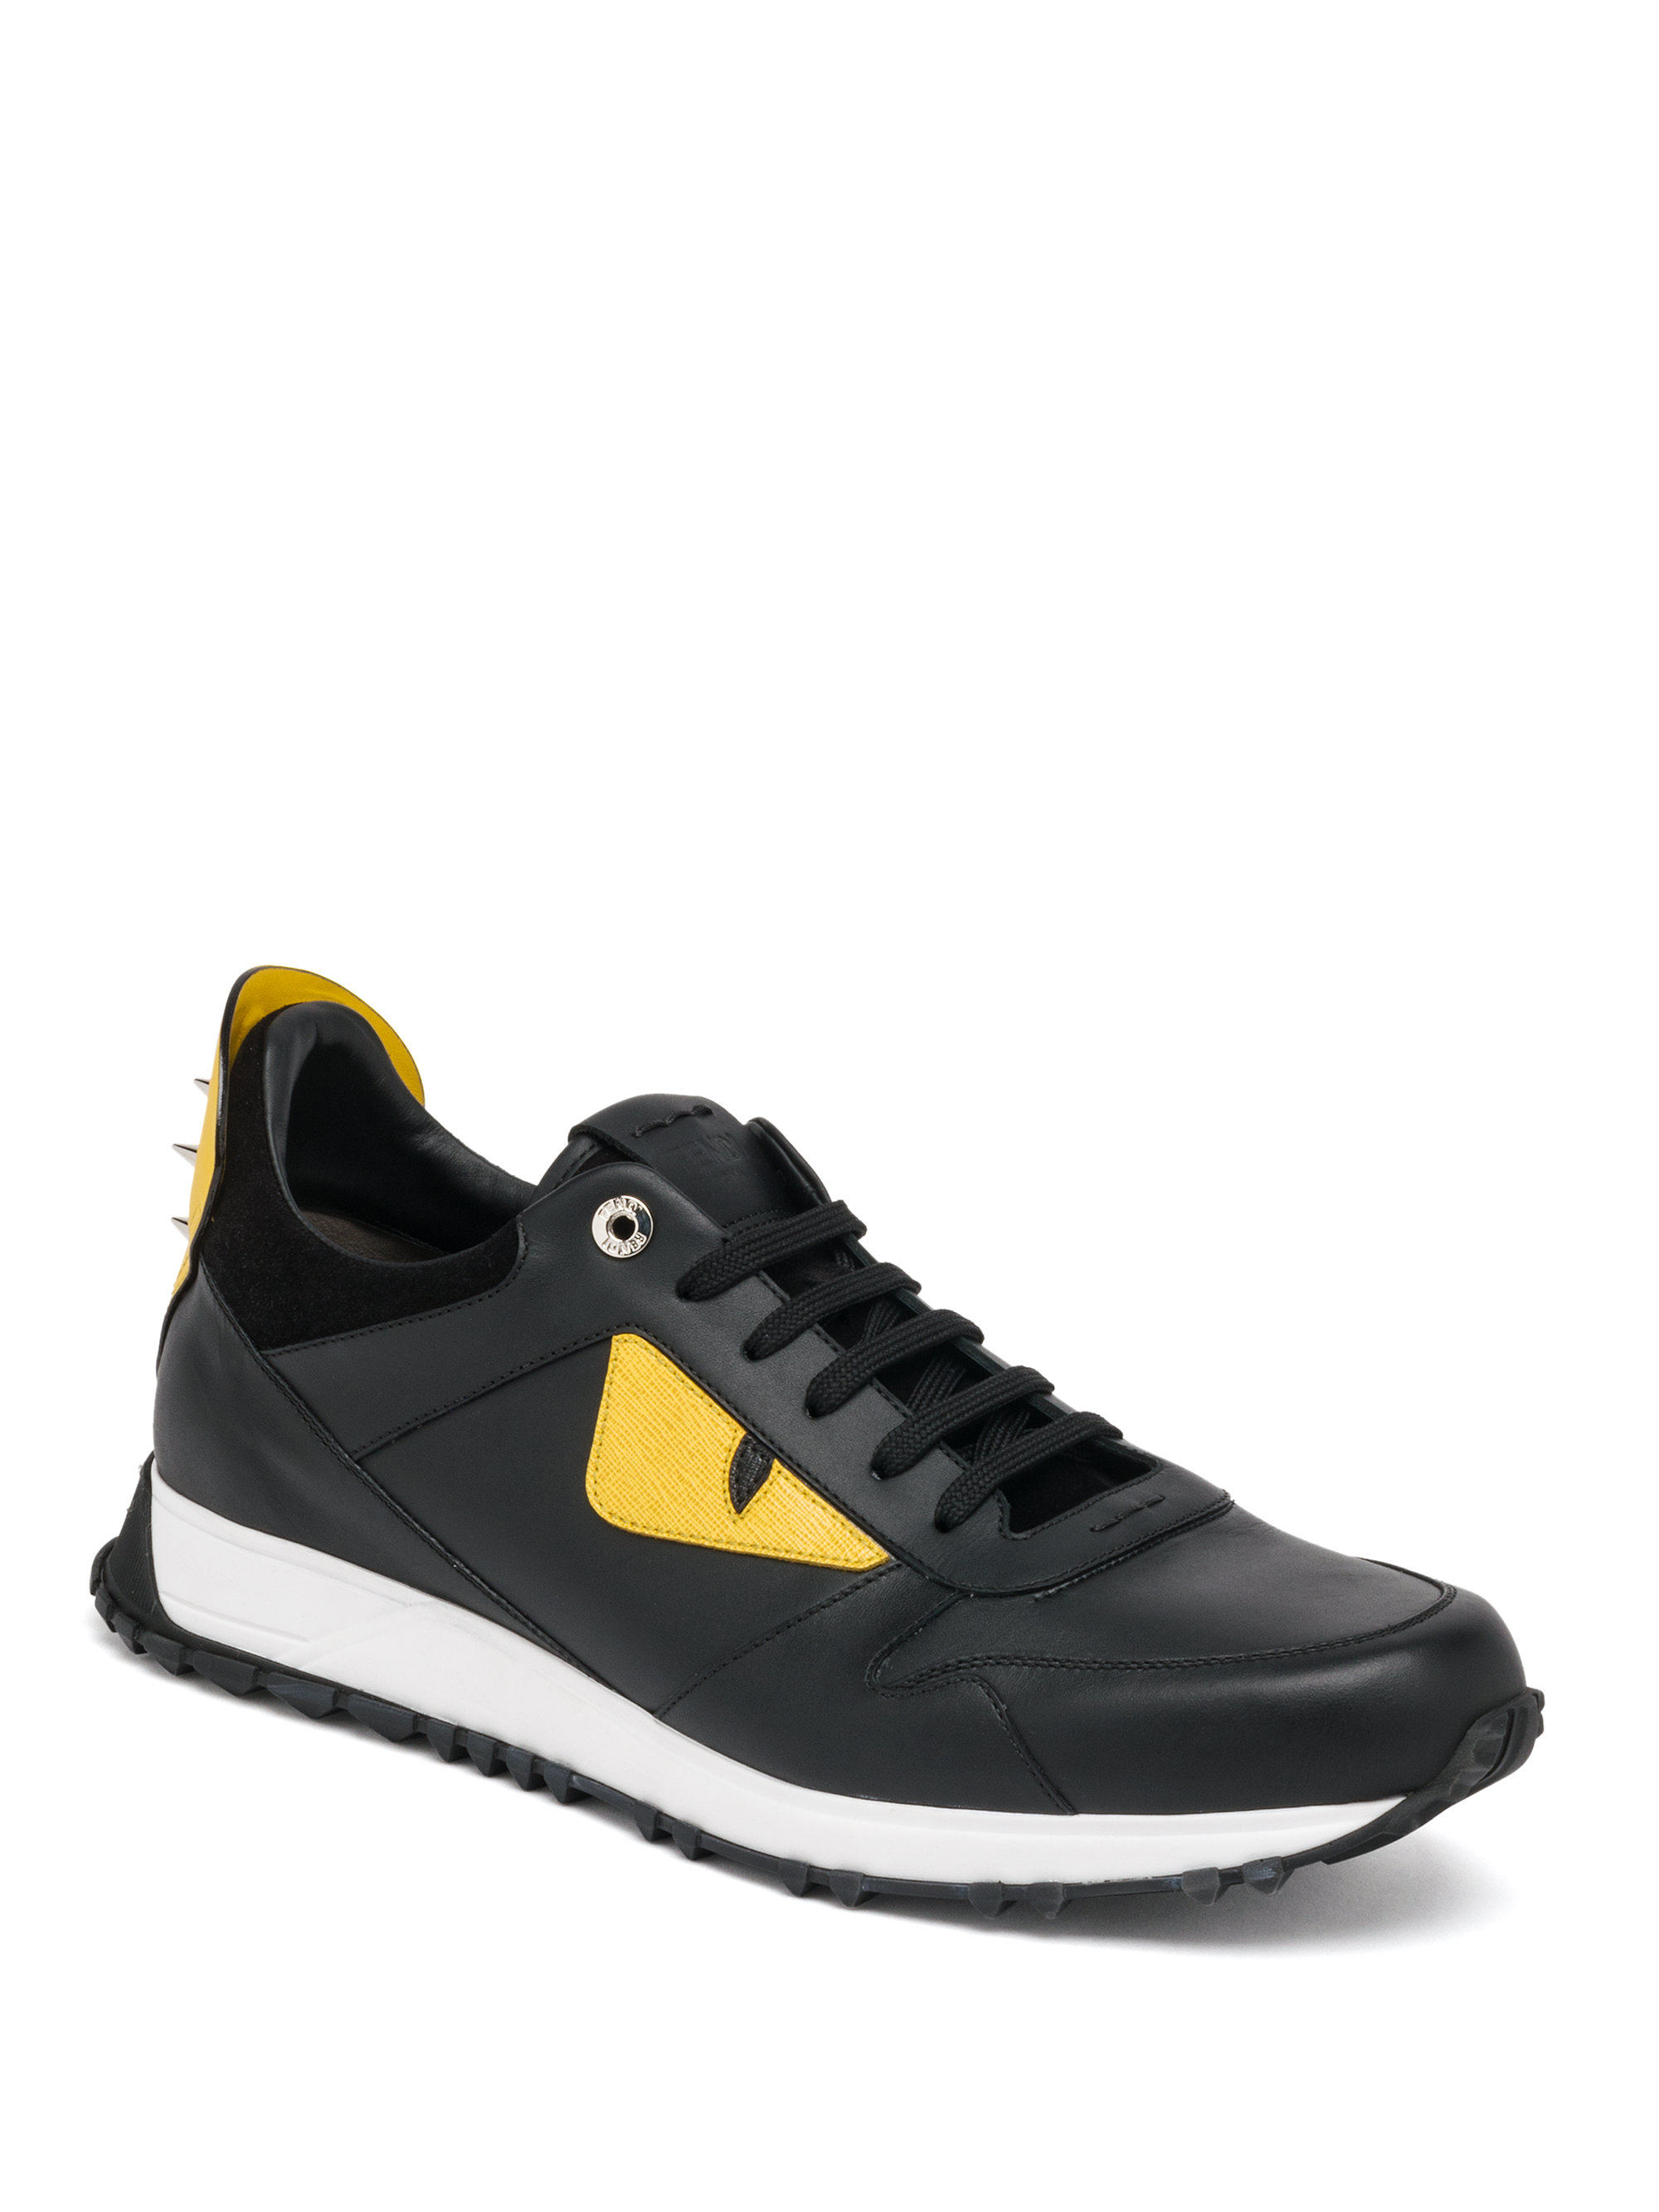 fendi bugs leather athletic sneakers in black for lyst